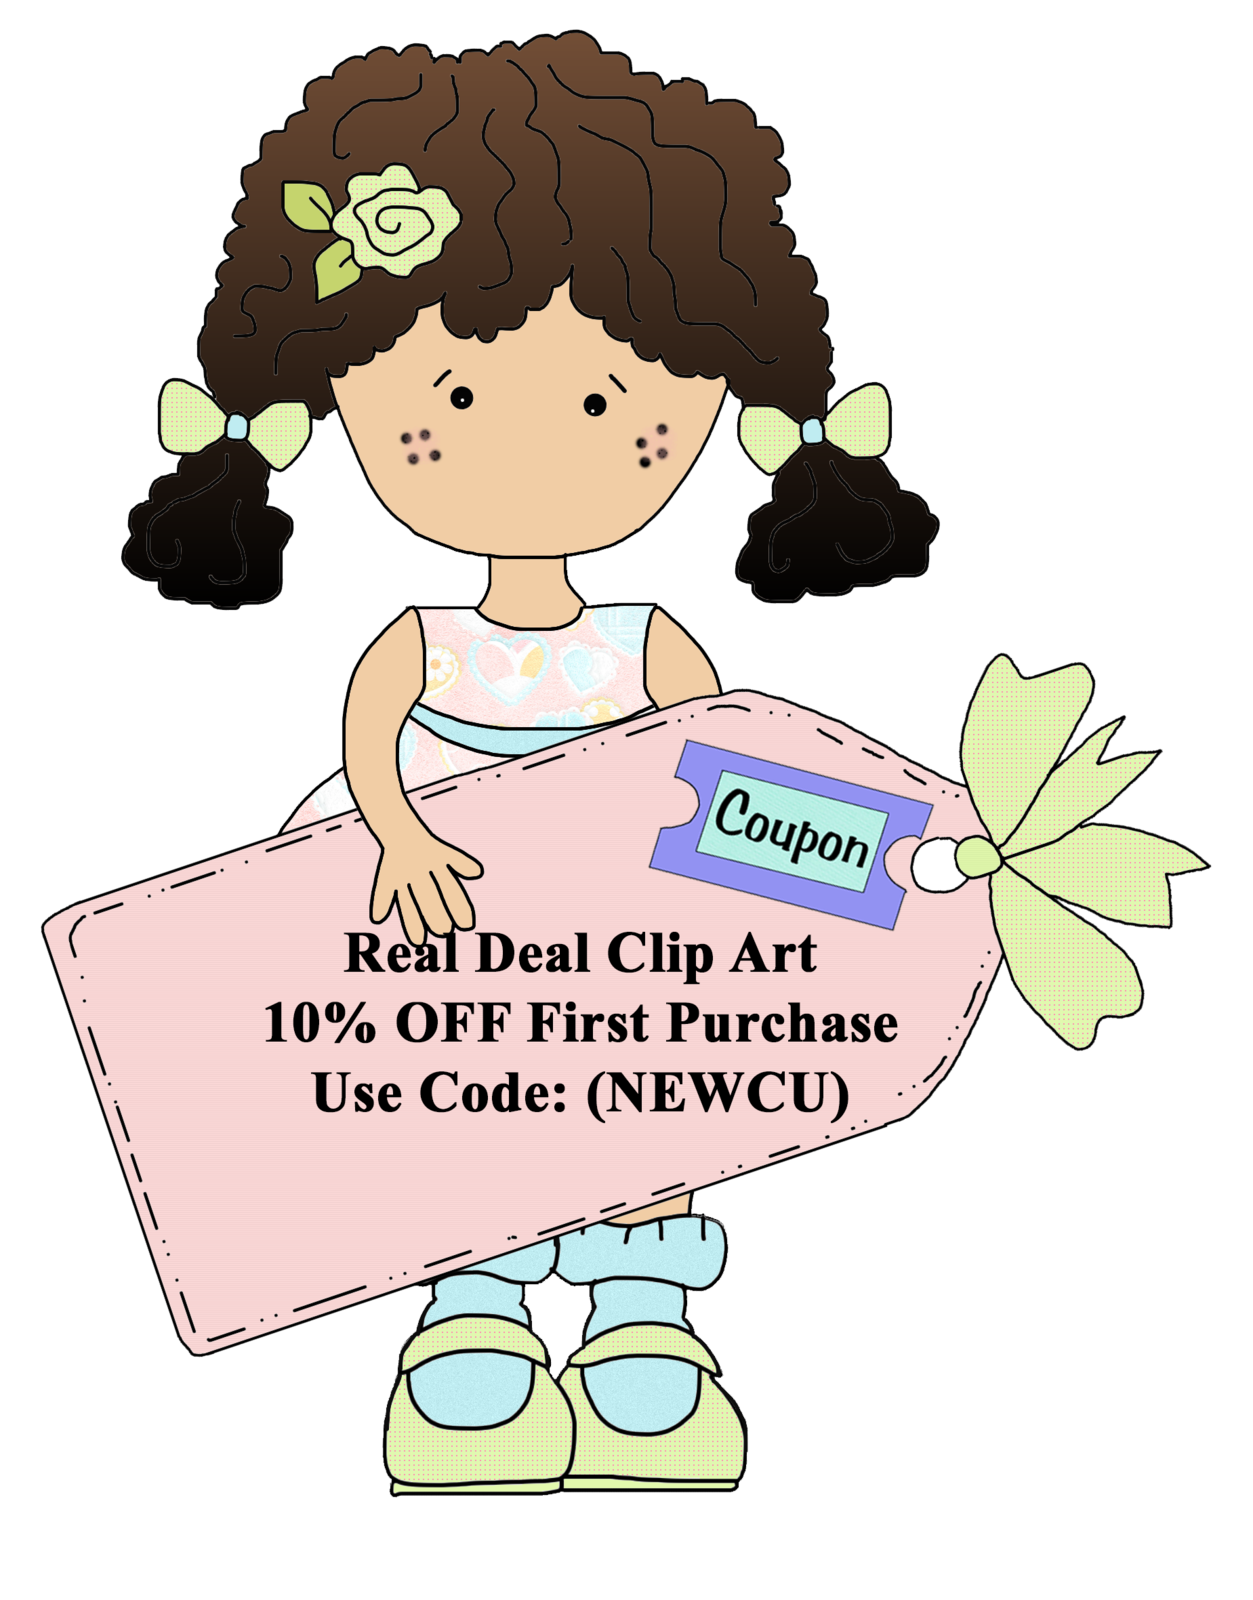 off st time. Coupon clipart diy